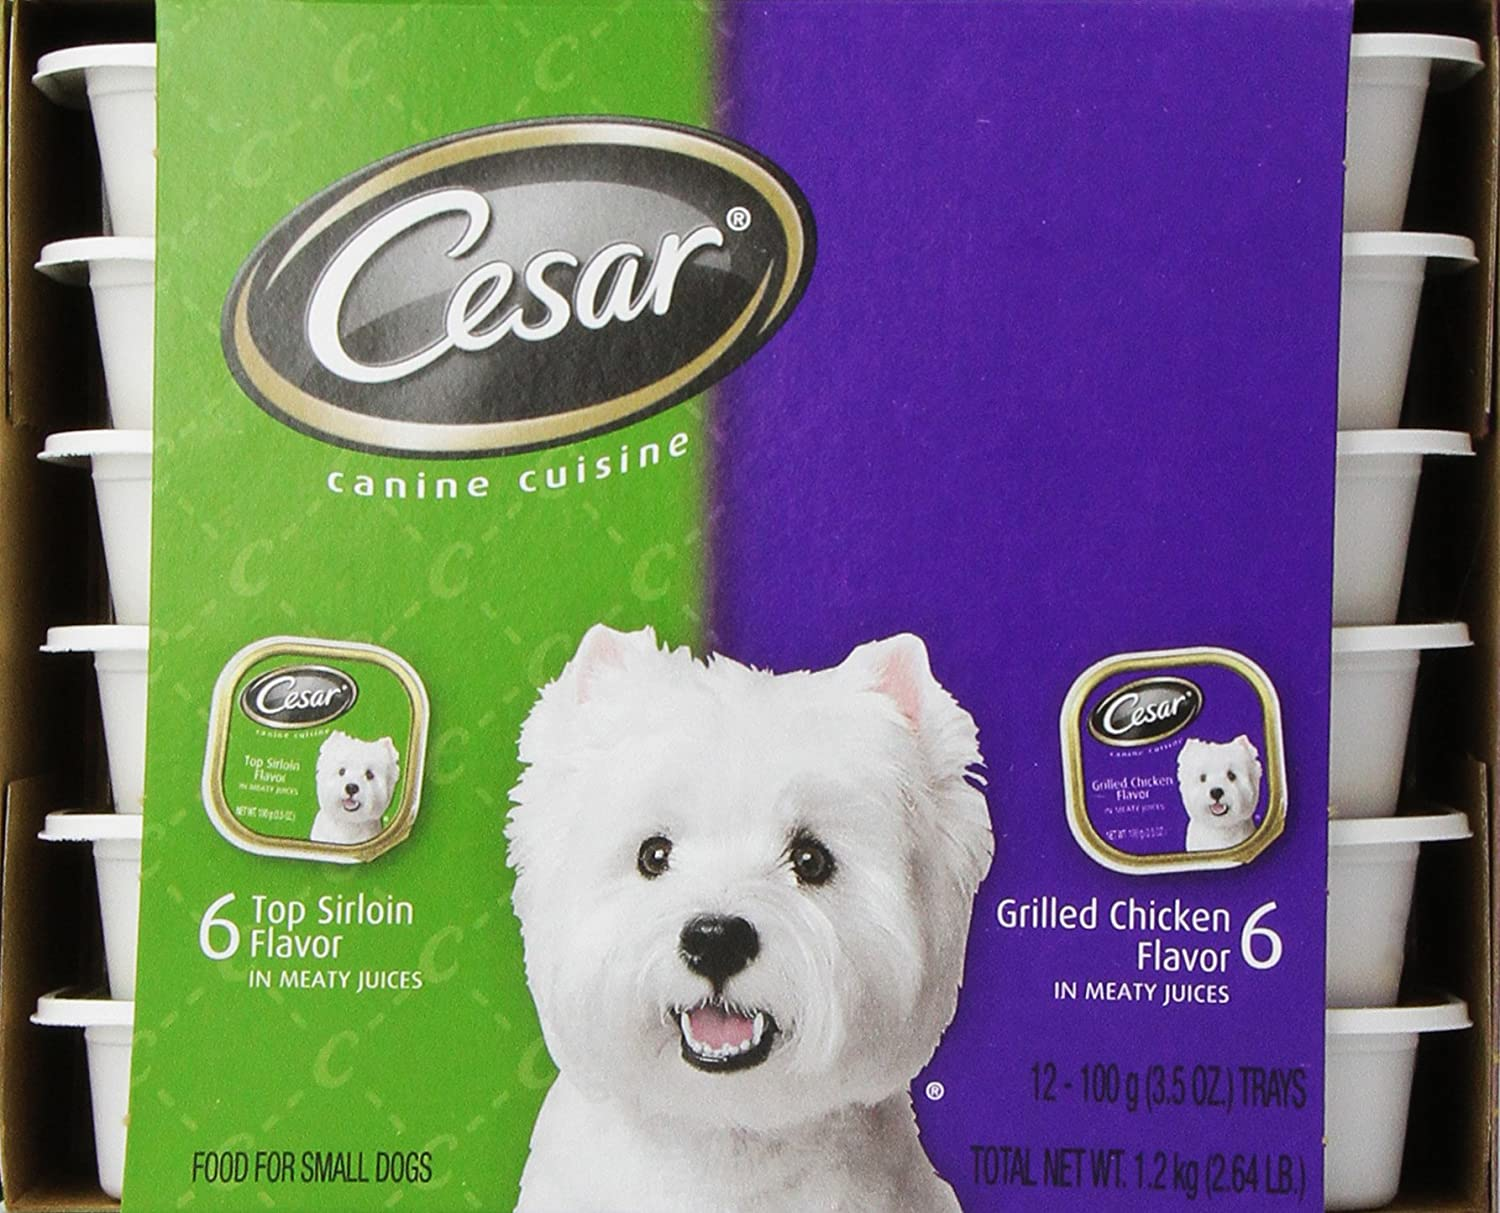 Cesar canine cuisine variety pack top sirloin grilled chicken for small dogs ebay - Cuisine cesar ...